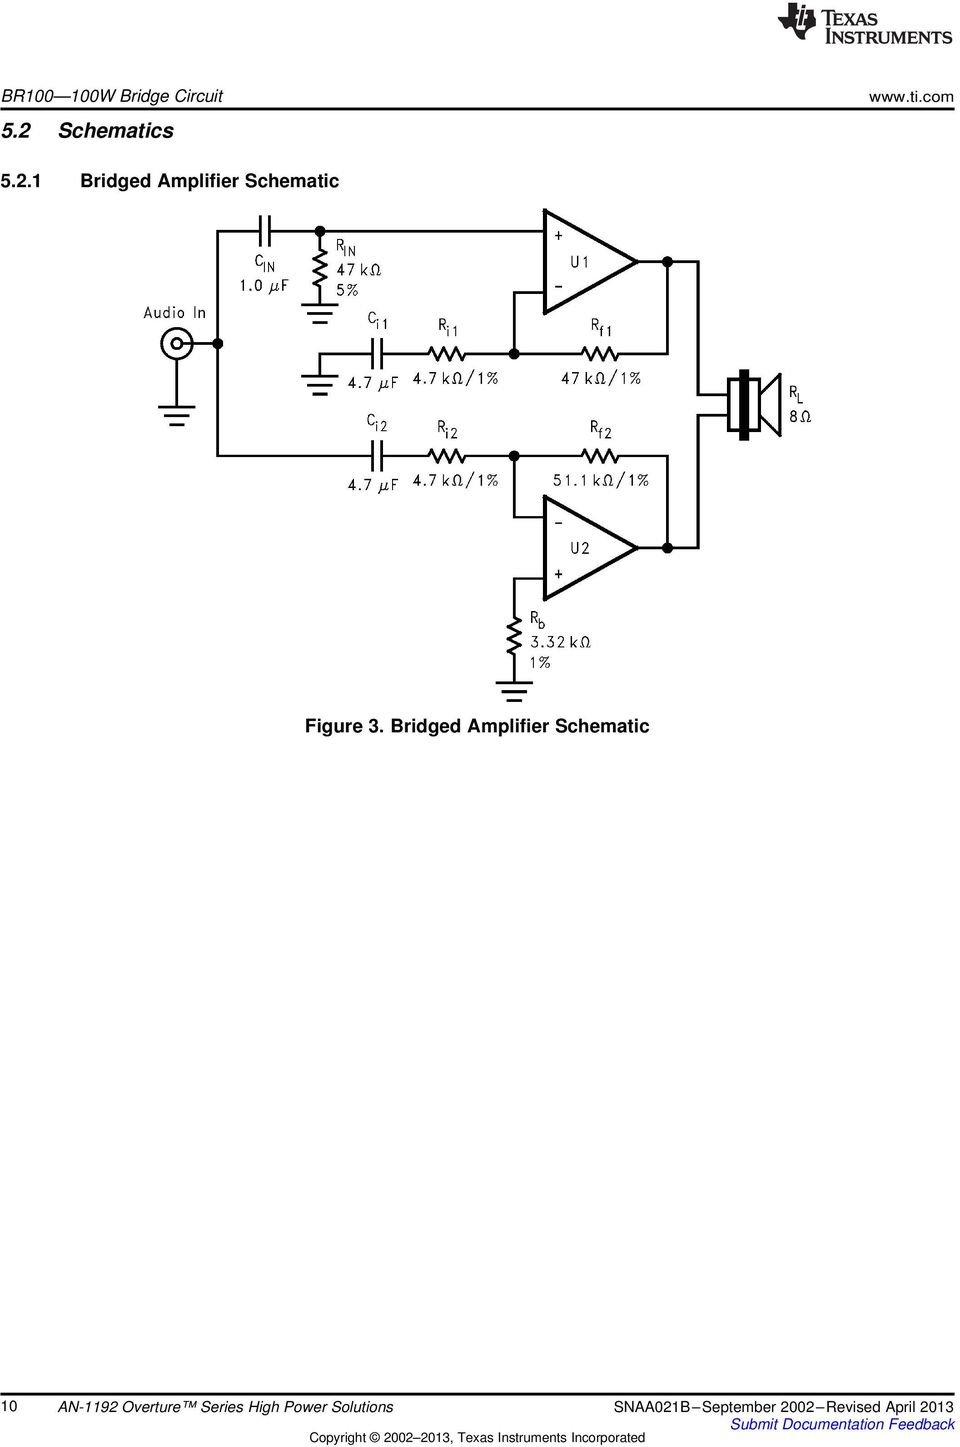 Bridged Amplifier Schematic